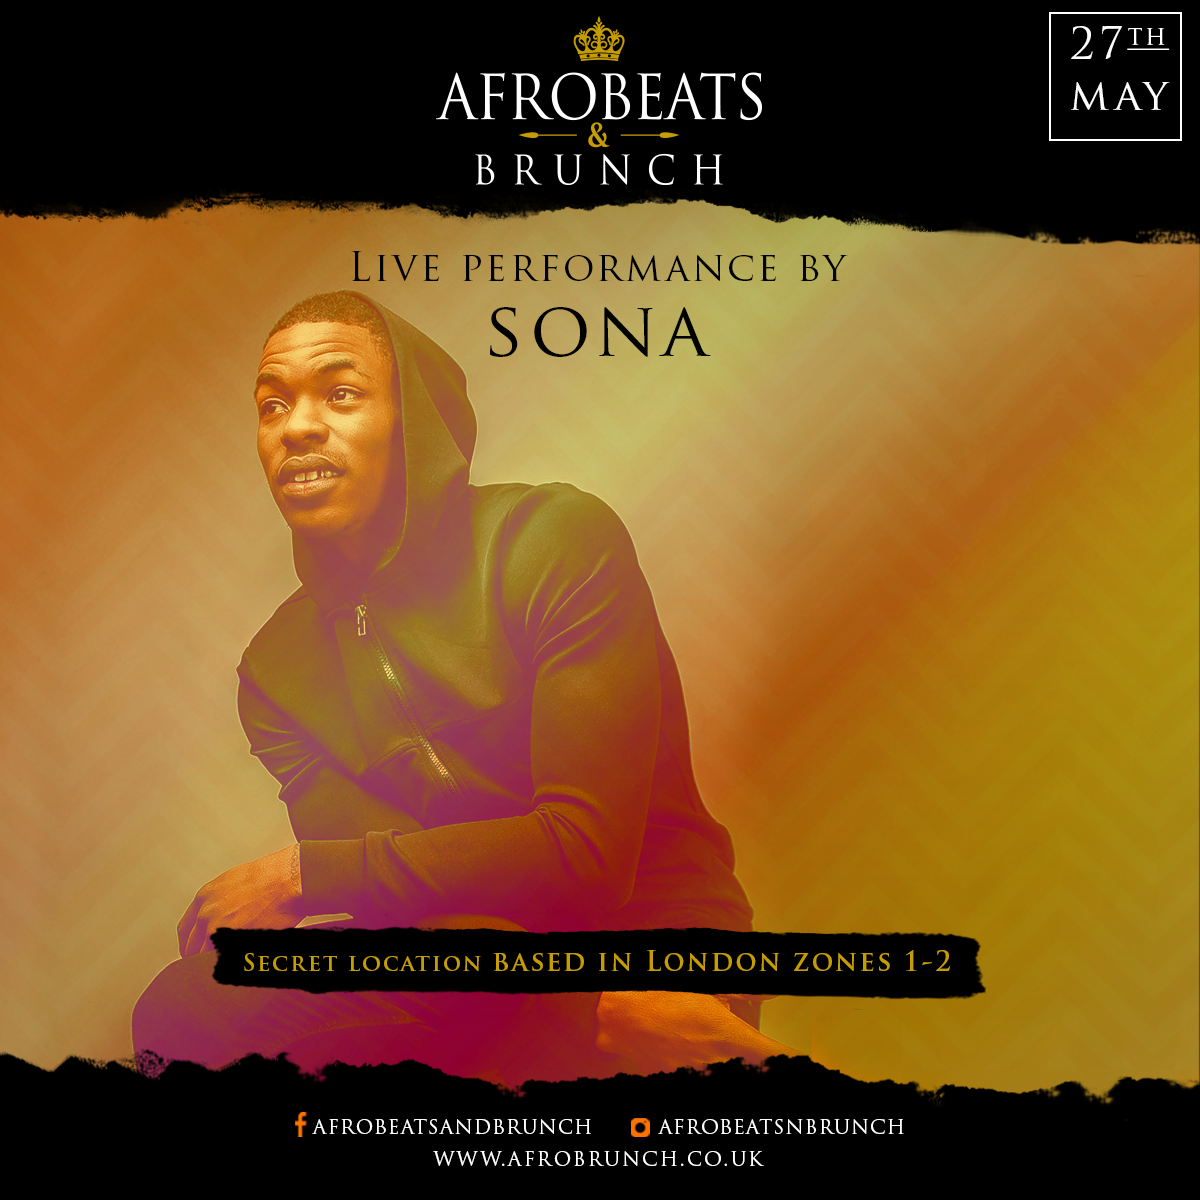 AfroBeat N Brunch - May 27th | London Brunch Reviews